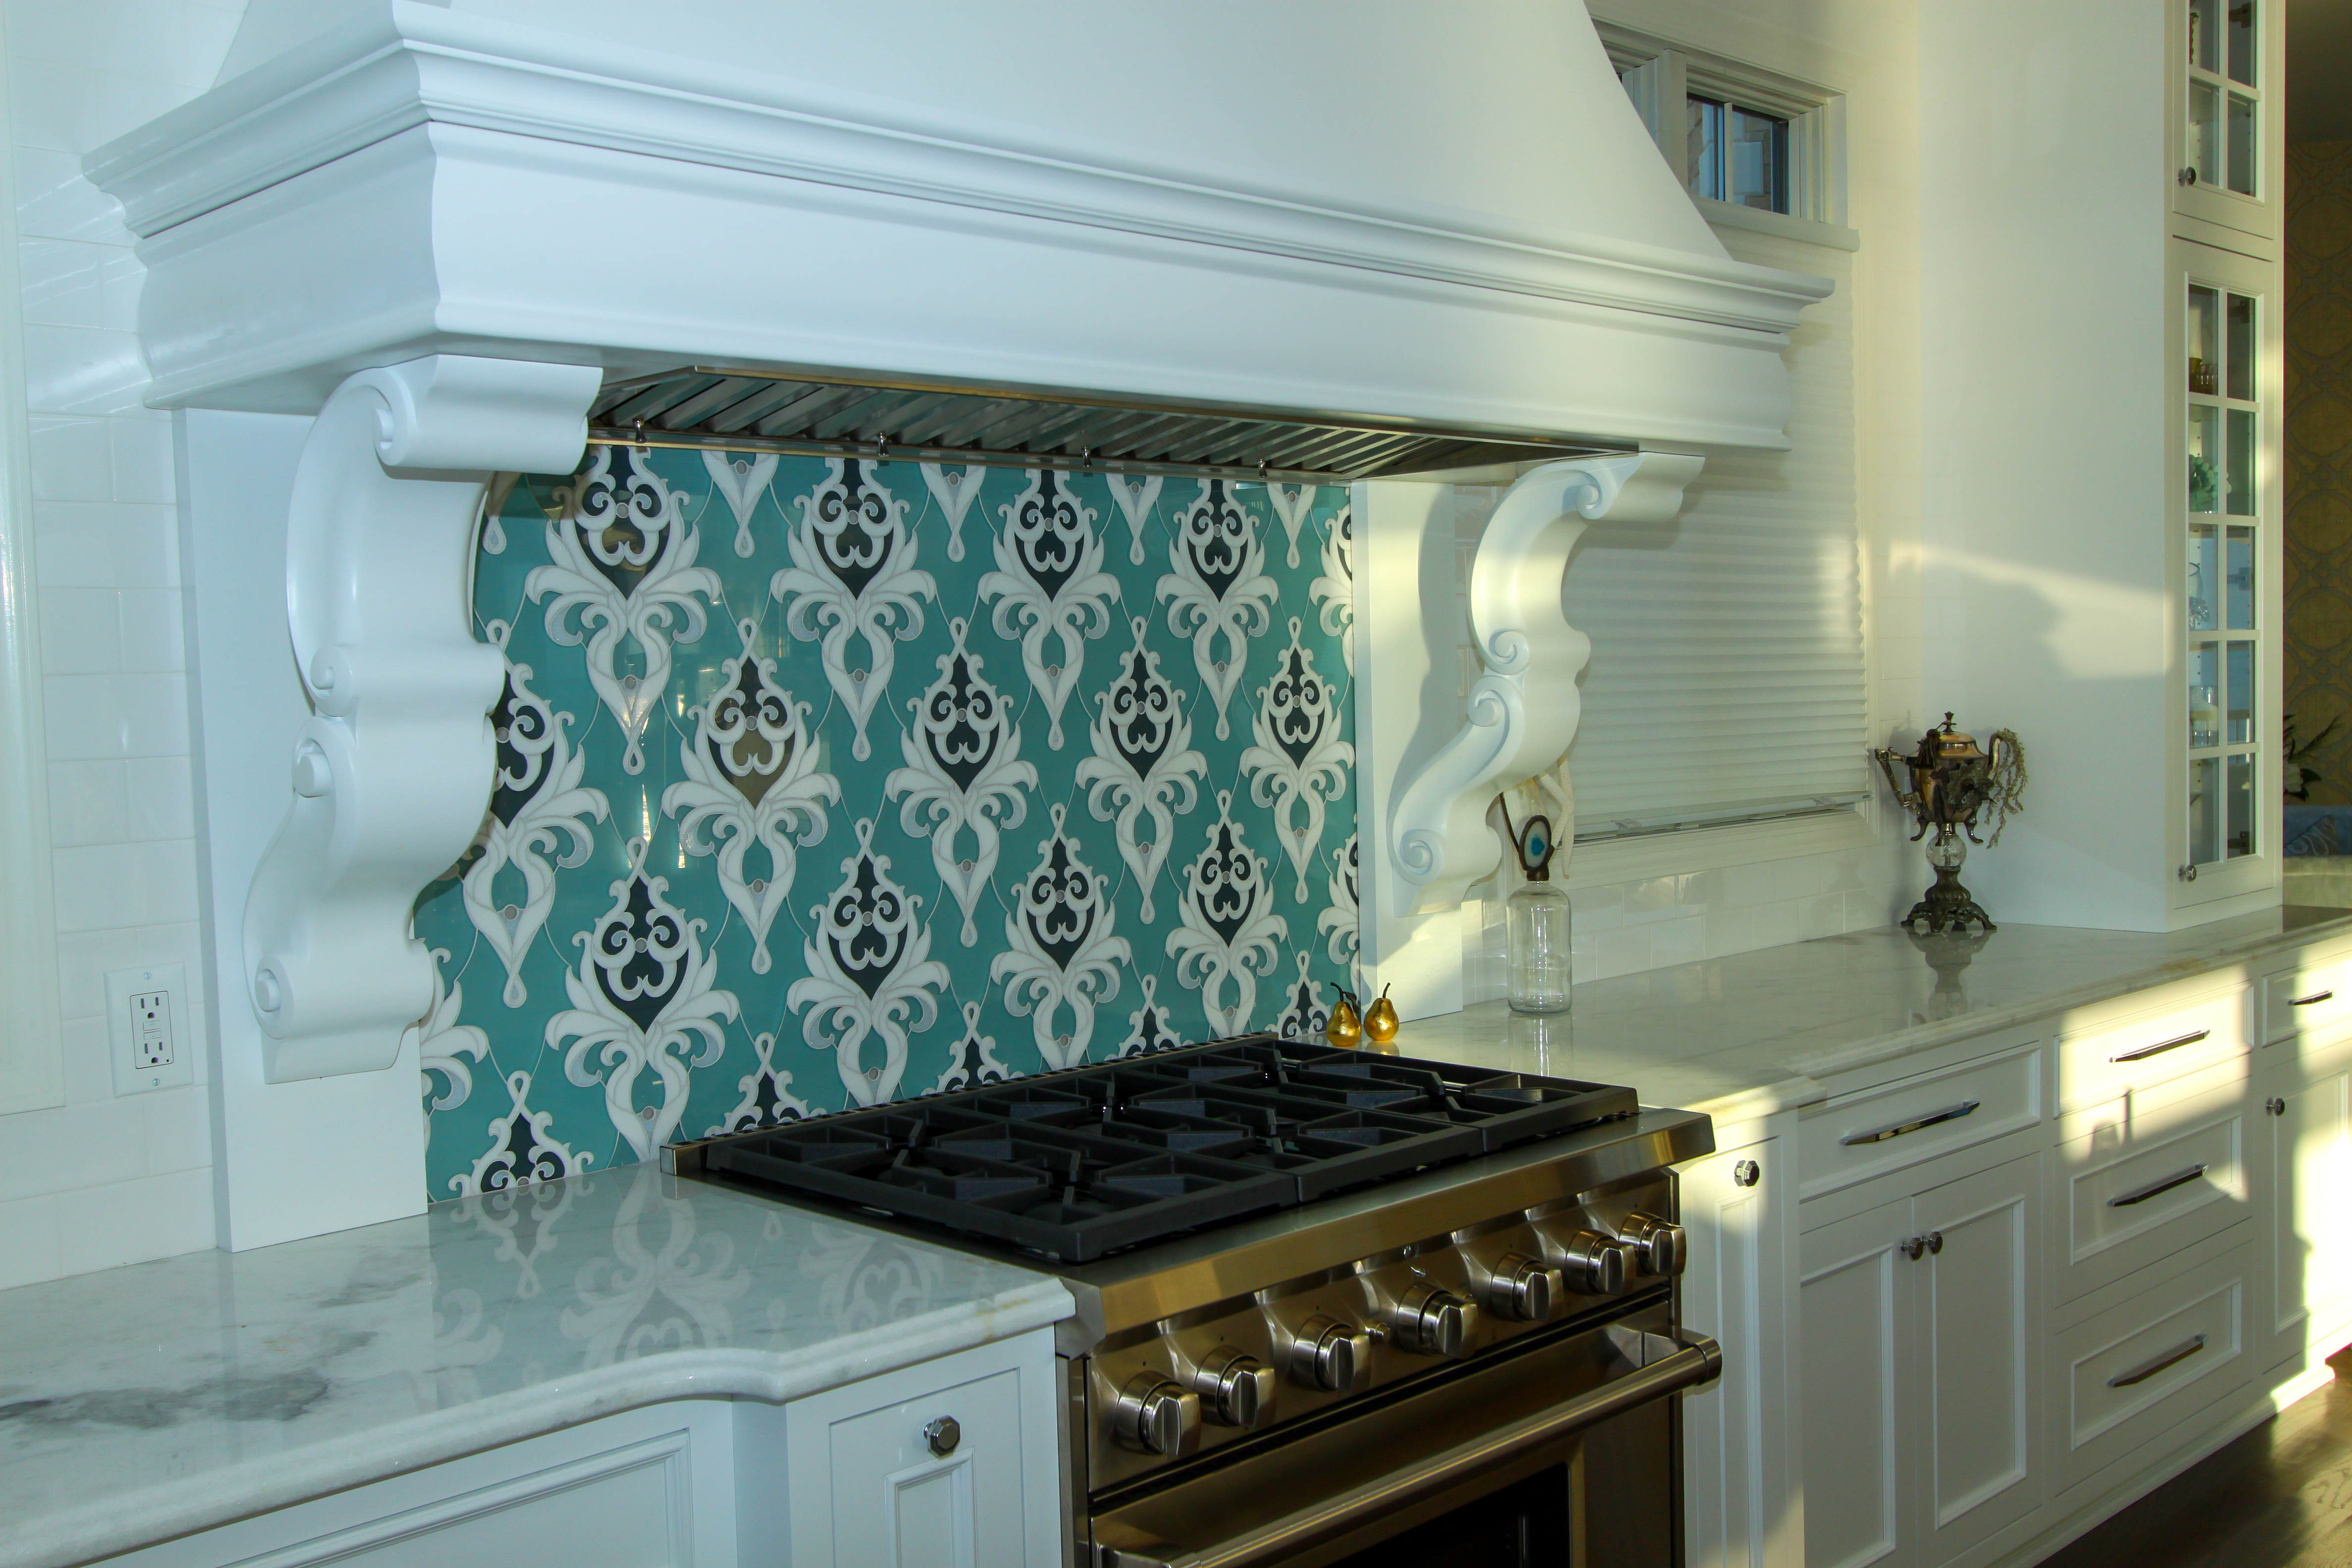 Detailed Tiled Back Splash